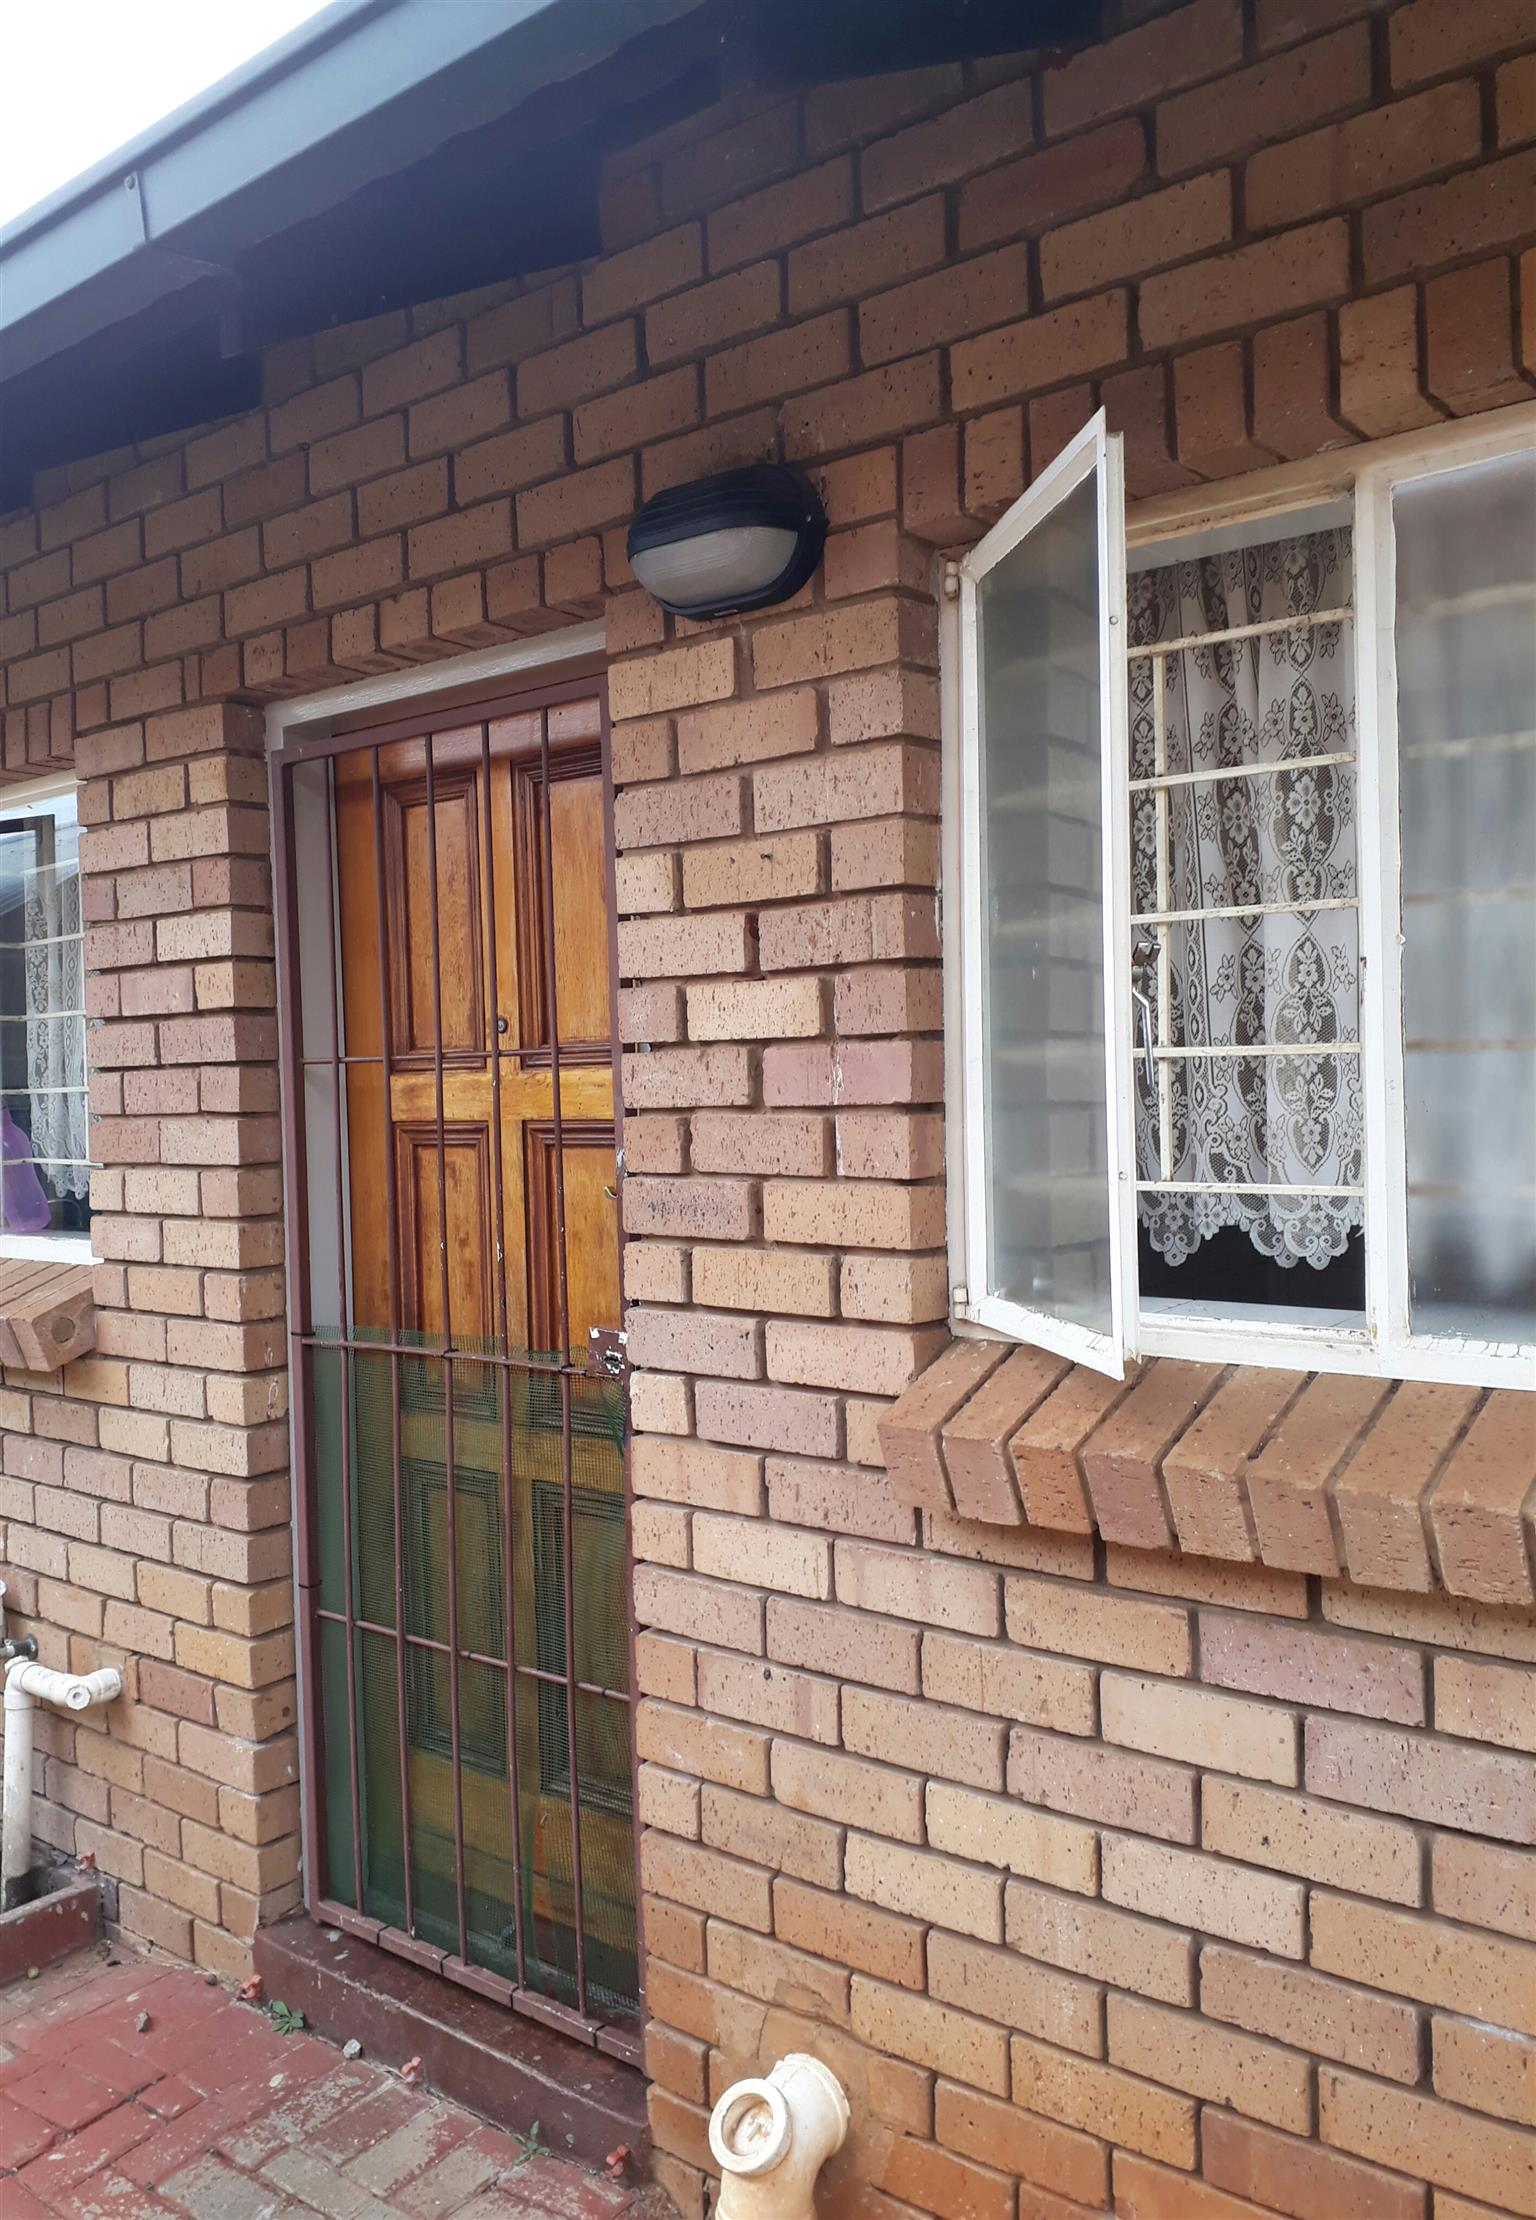 R770000 2 bedroom for sale in Annlin